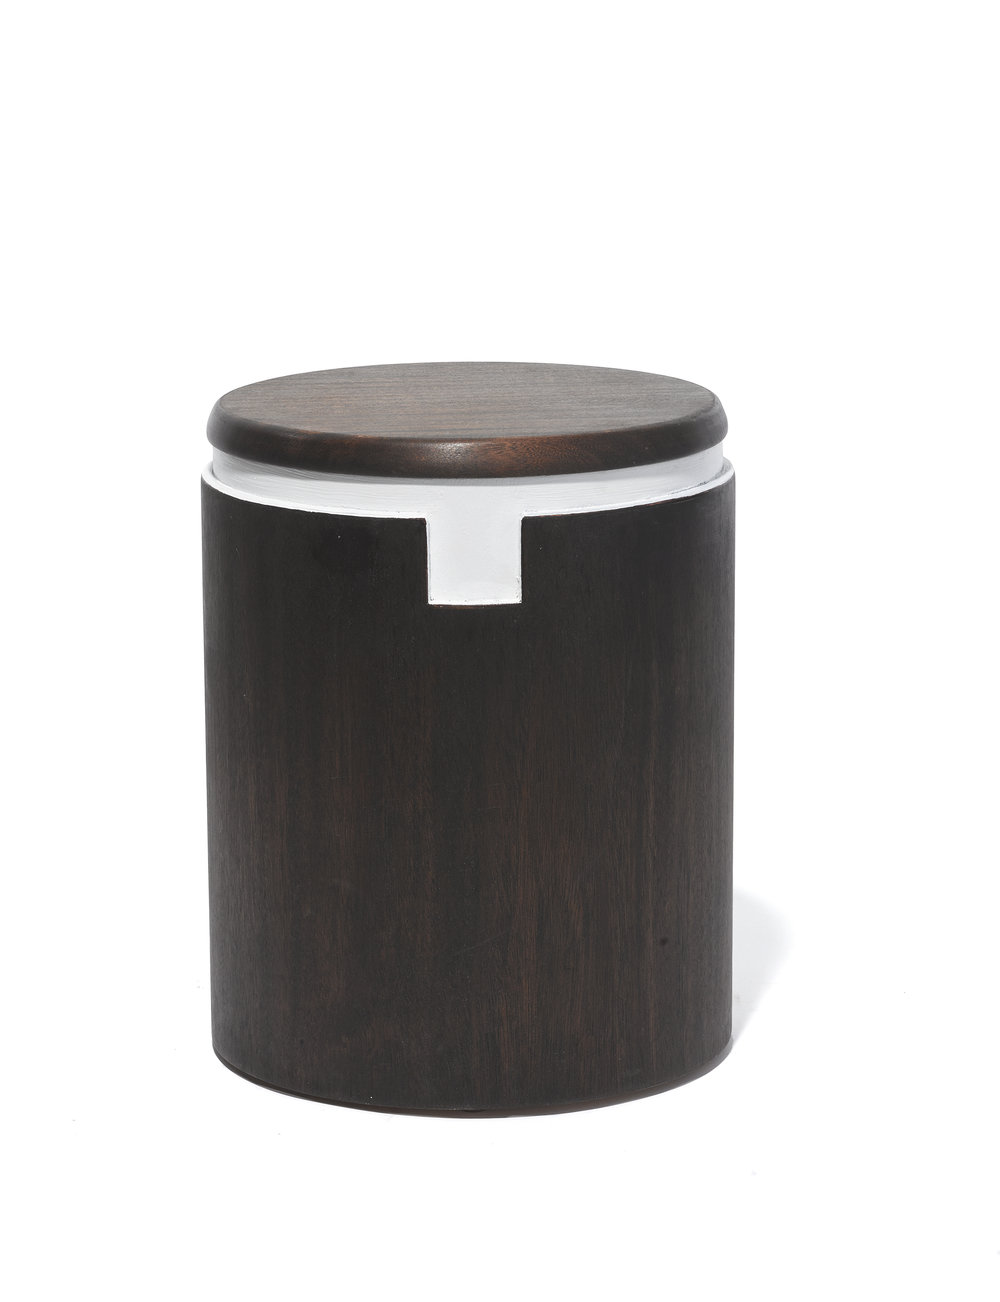 Bishop Stool - Dark Michael Yates Michael Yates USA (Austin, TX / Brooklun, NY) 2016 Wood H 14.75 in, Dia 11.25 in 10 lbs. LIST PRICE: Cube $450 DESIGNER DISCOUNT PRICE: $ LEAD TIME: 3-5 Days QUANTITY IN STOCK: 1 ONLINE PLATFORMS: kM Web, Artsy,